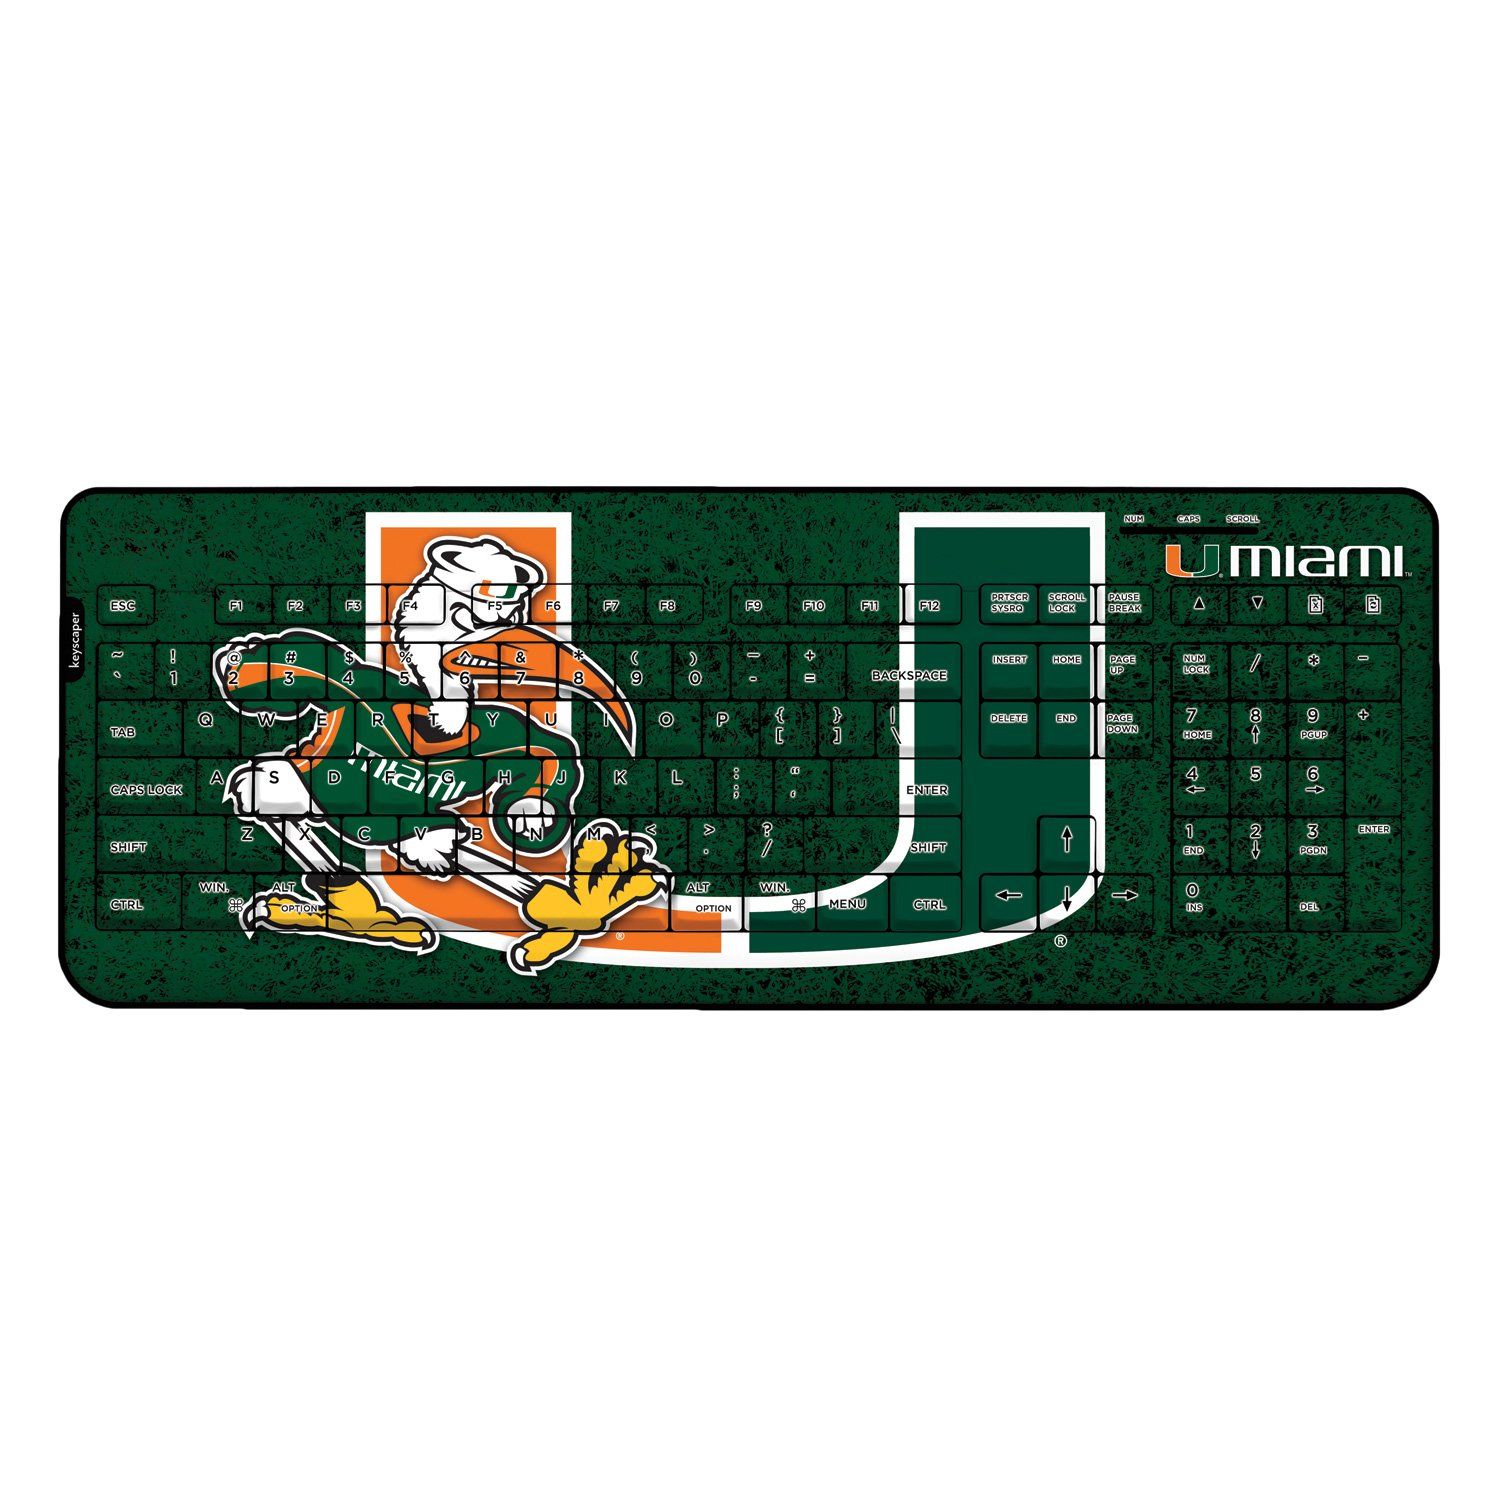 Miami Hurricanes Keyscaper Wired Keyboard Licensed by the NCAA by Keyscaper